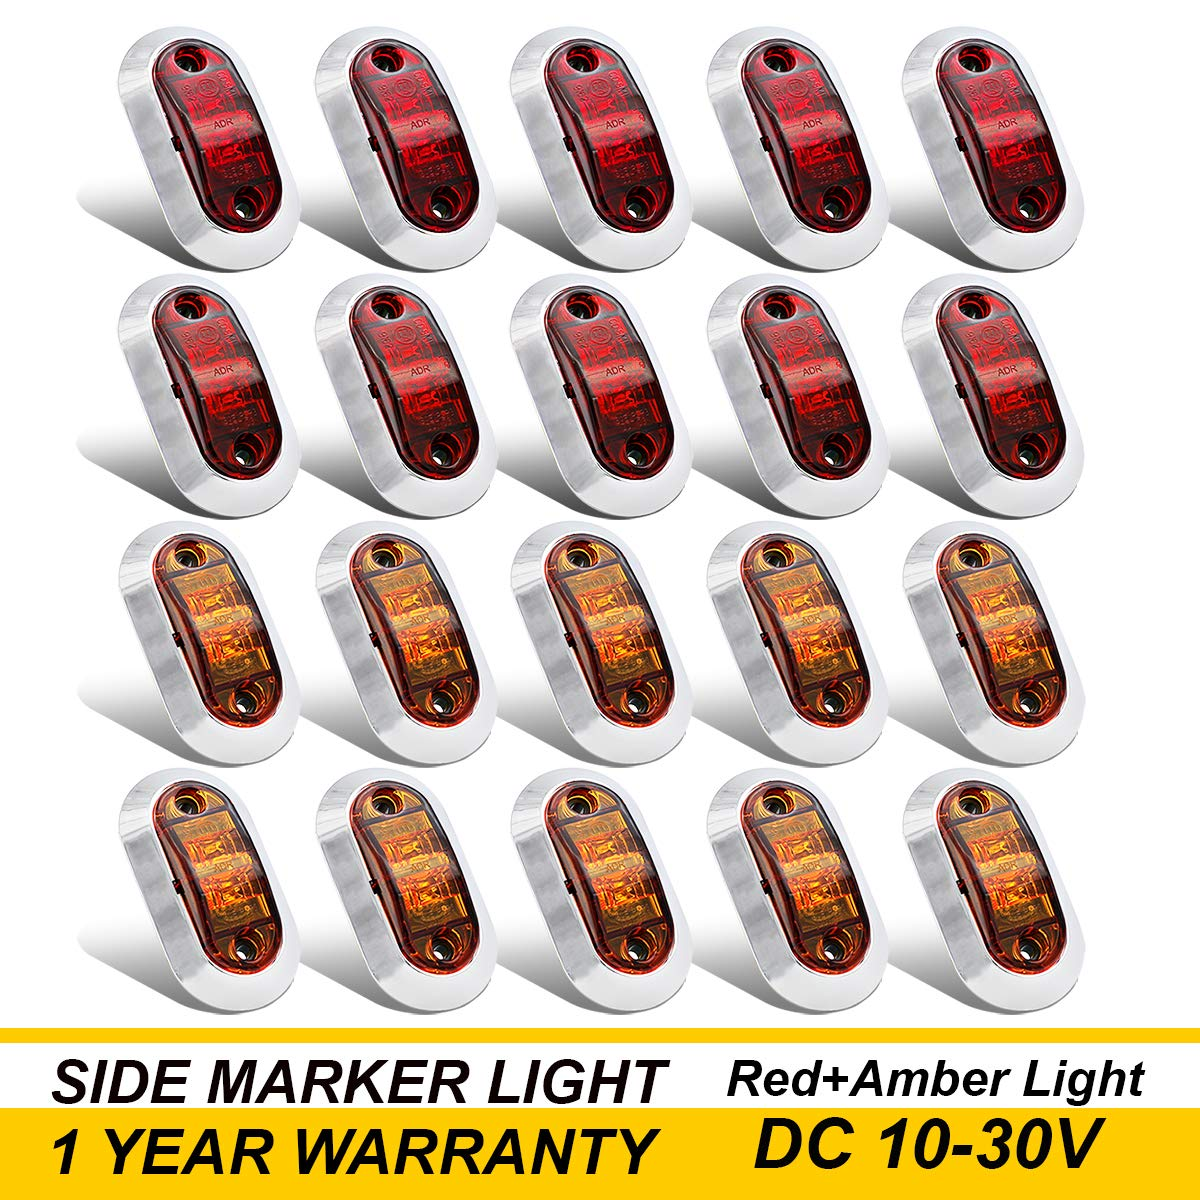 10 Pcs Amber Pce Red Tmh 25 Inch Surface Mount Led Trailer Clearance Side Marker Light With Reflector 2 Wire Markers Lights